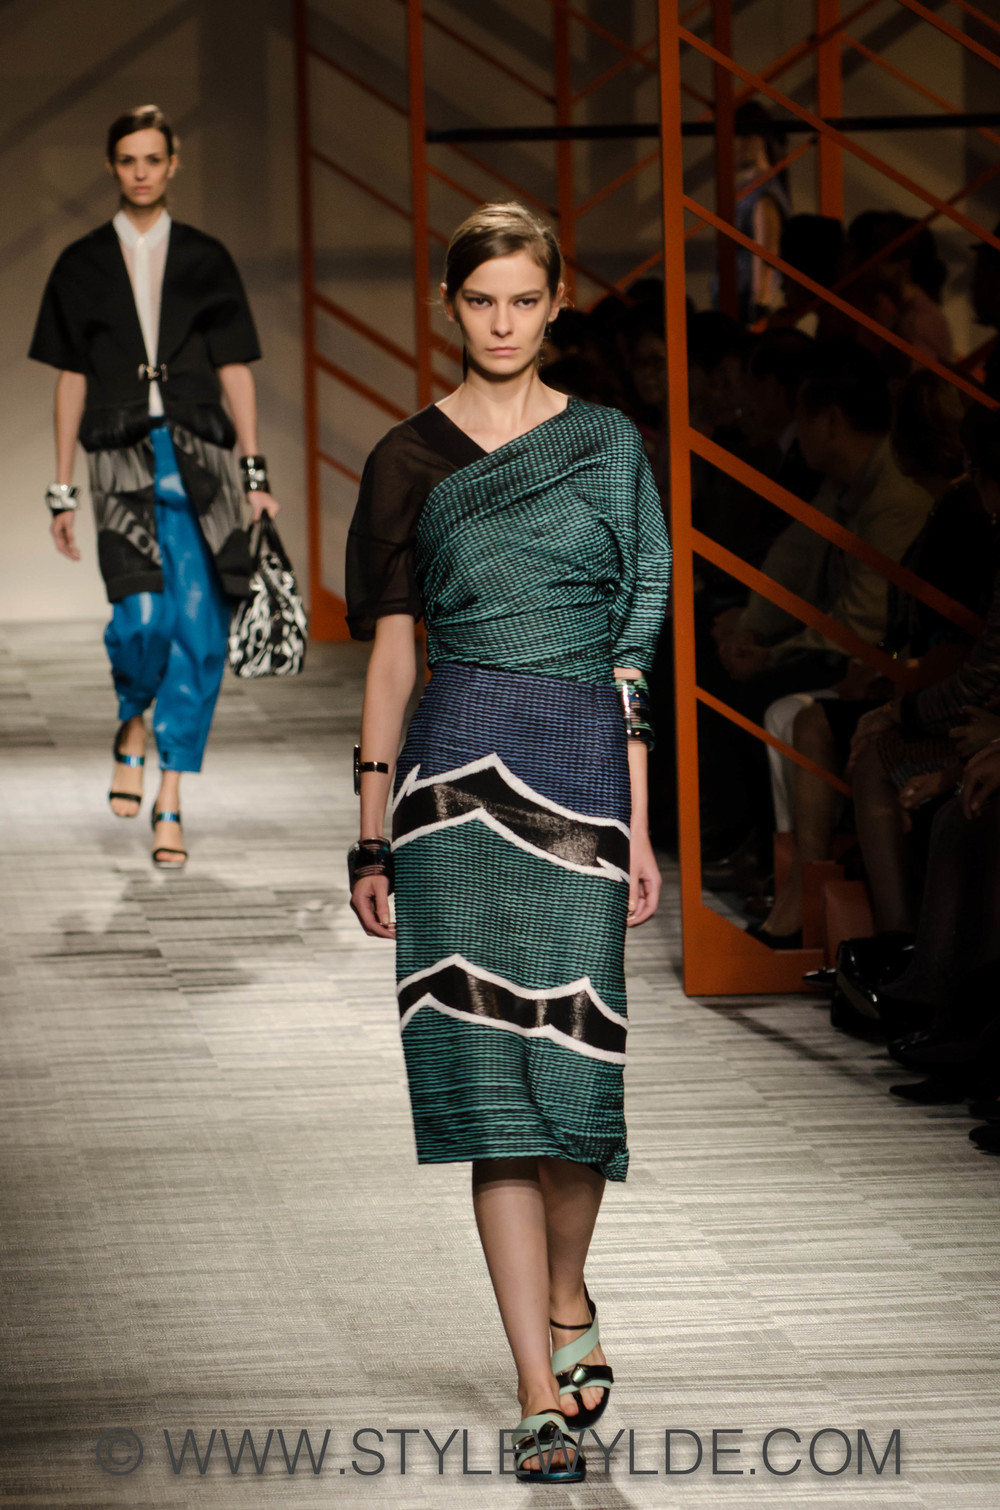 STYLEWYLDE_Missoni_SS2014 (1 of 1)-9.jpg